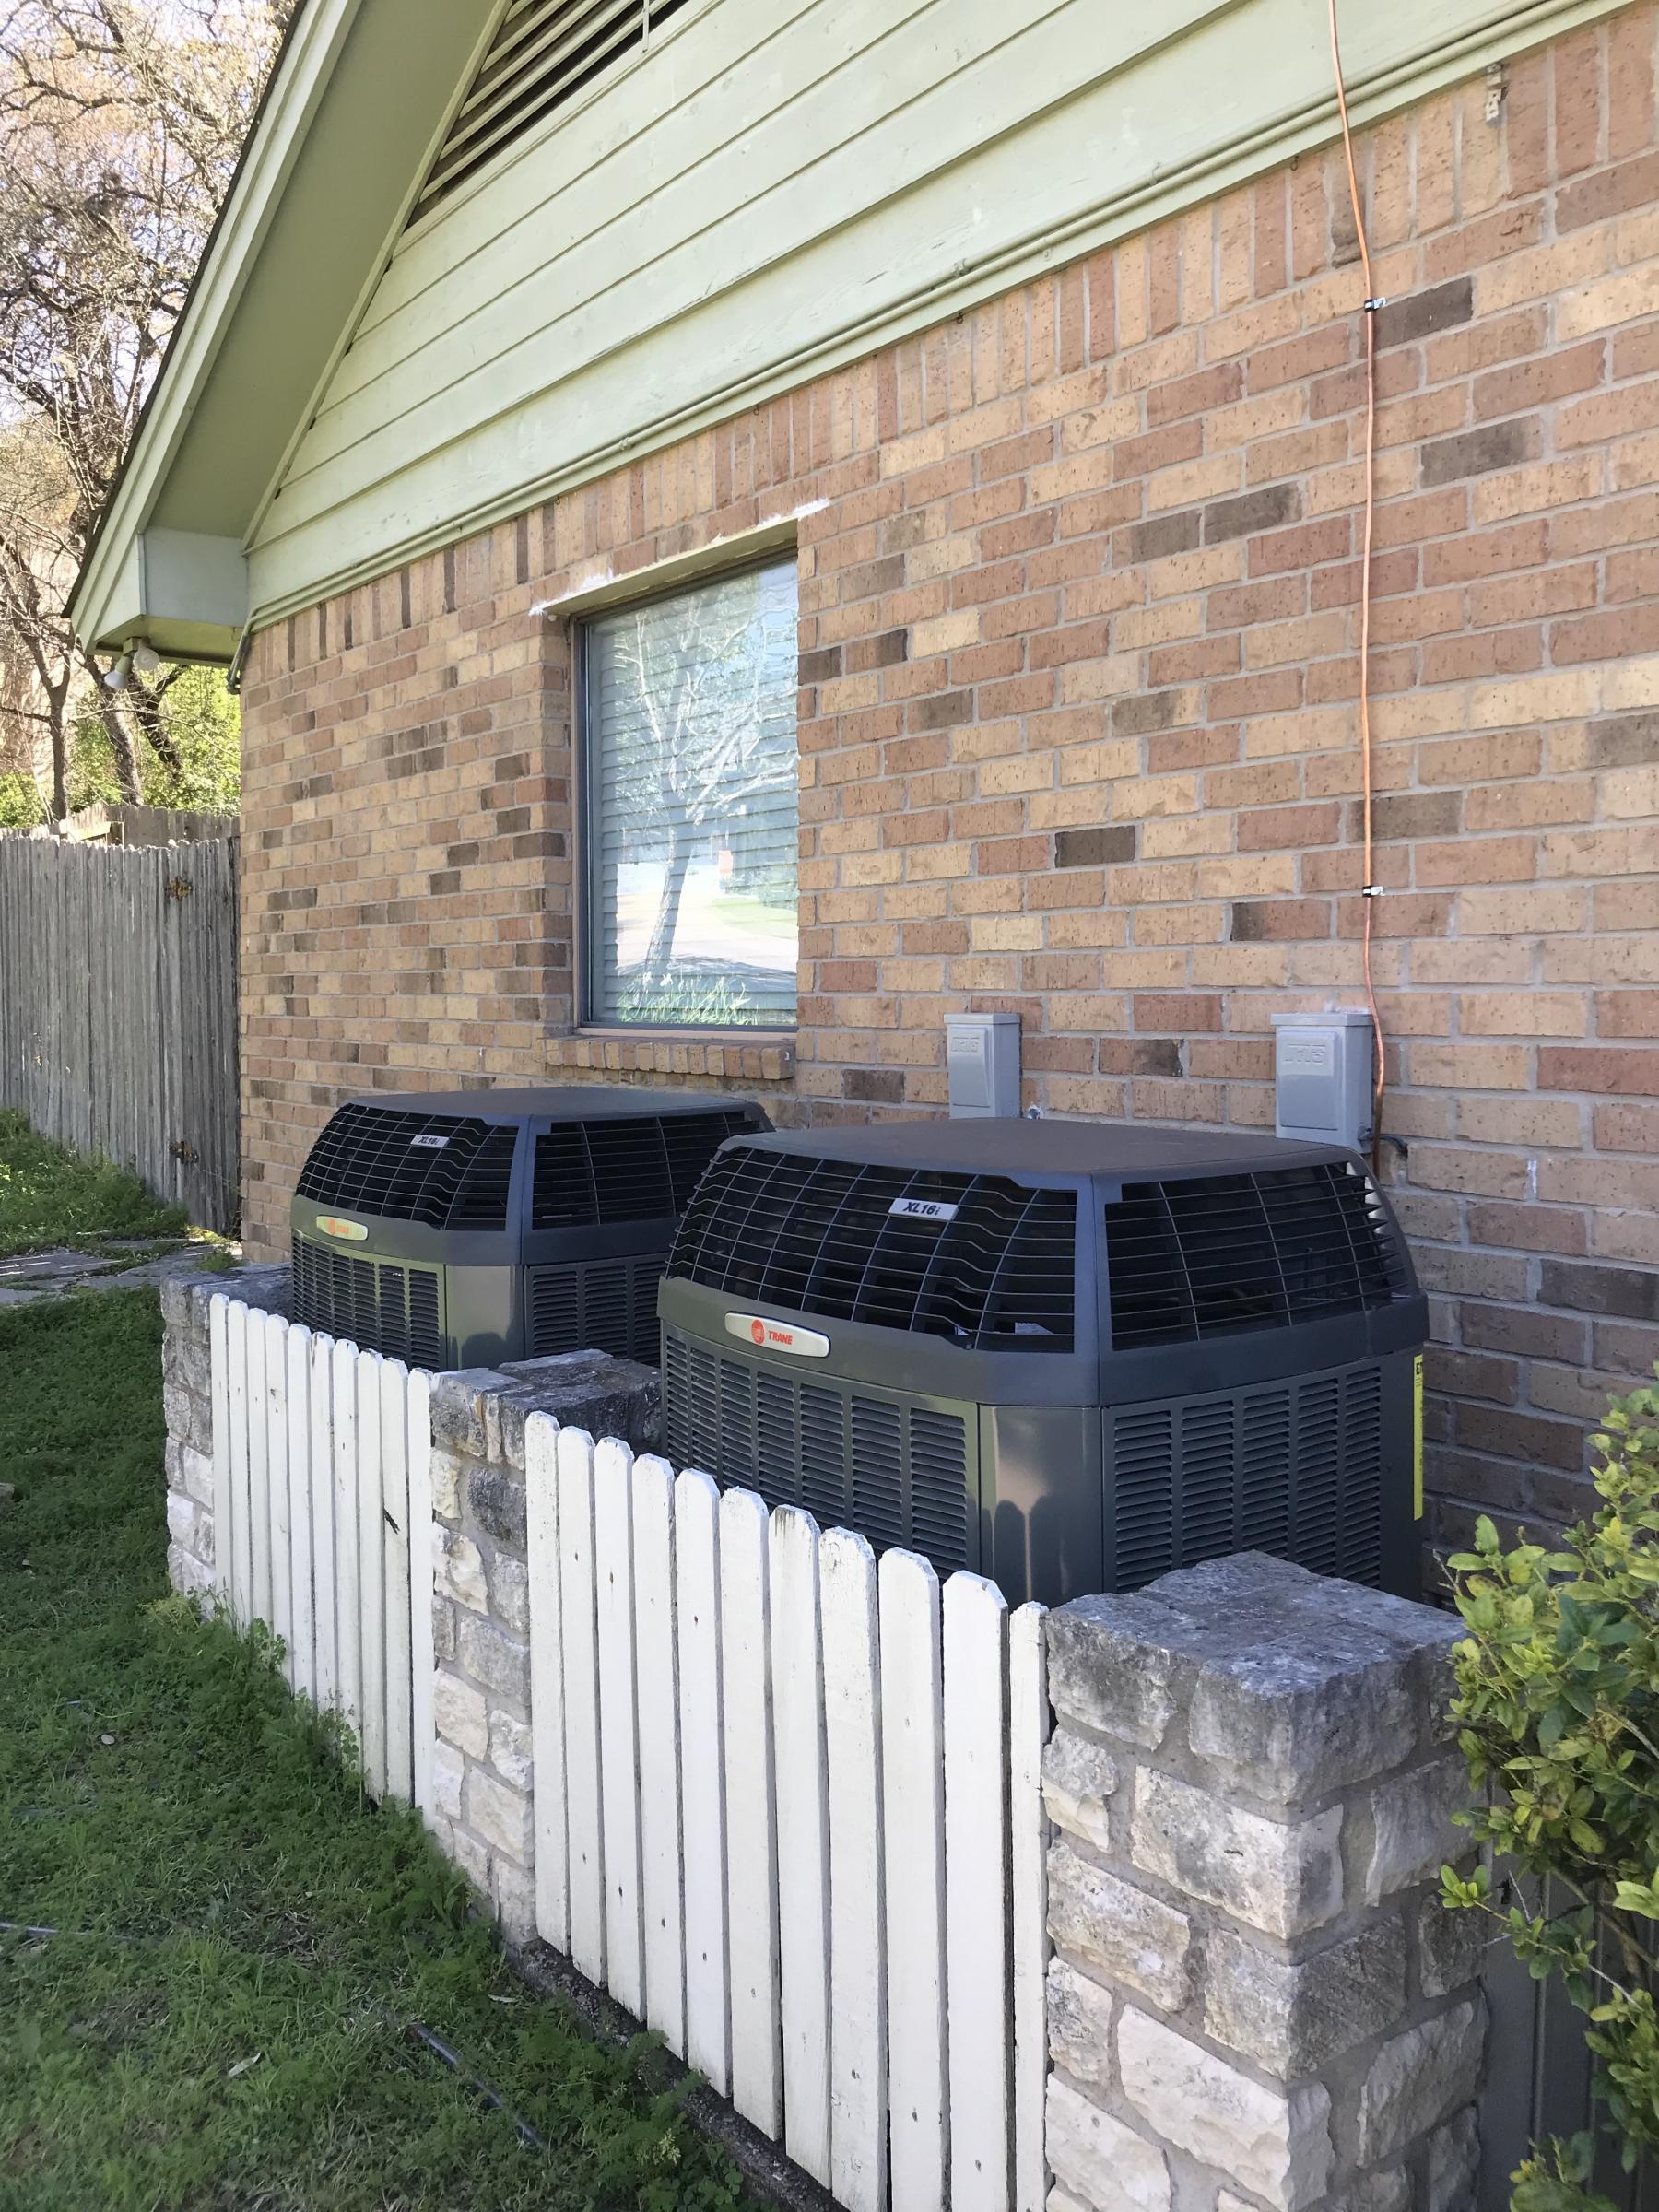 Recent new air conditioning system installation by Green Collar Operations of Austin, Texas.